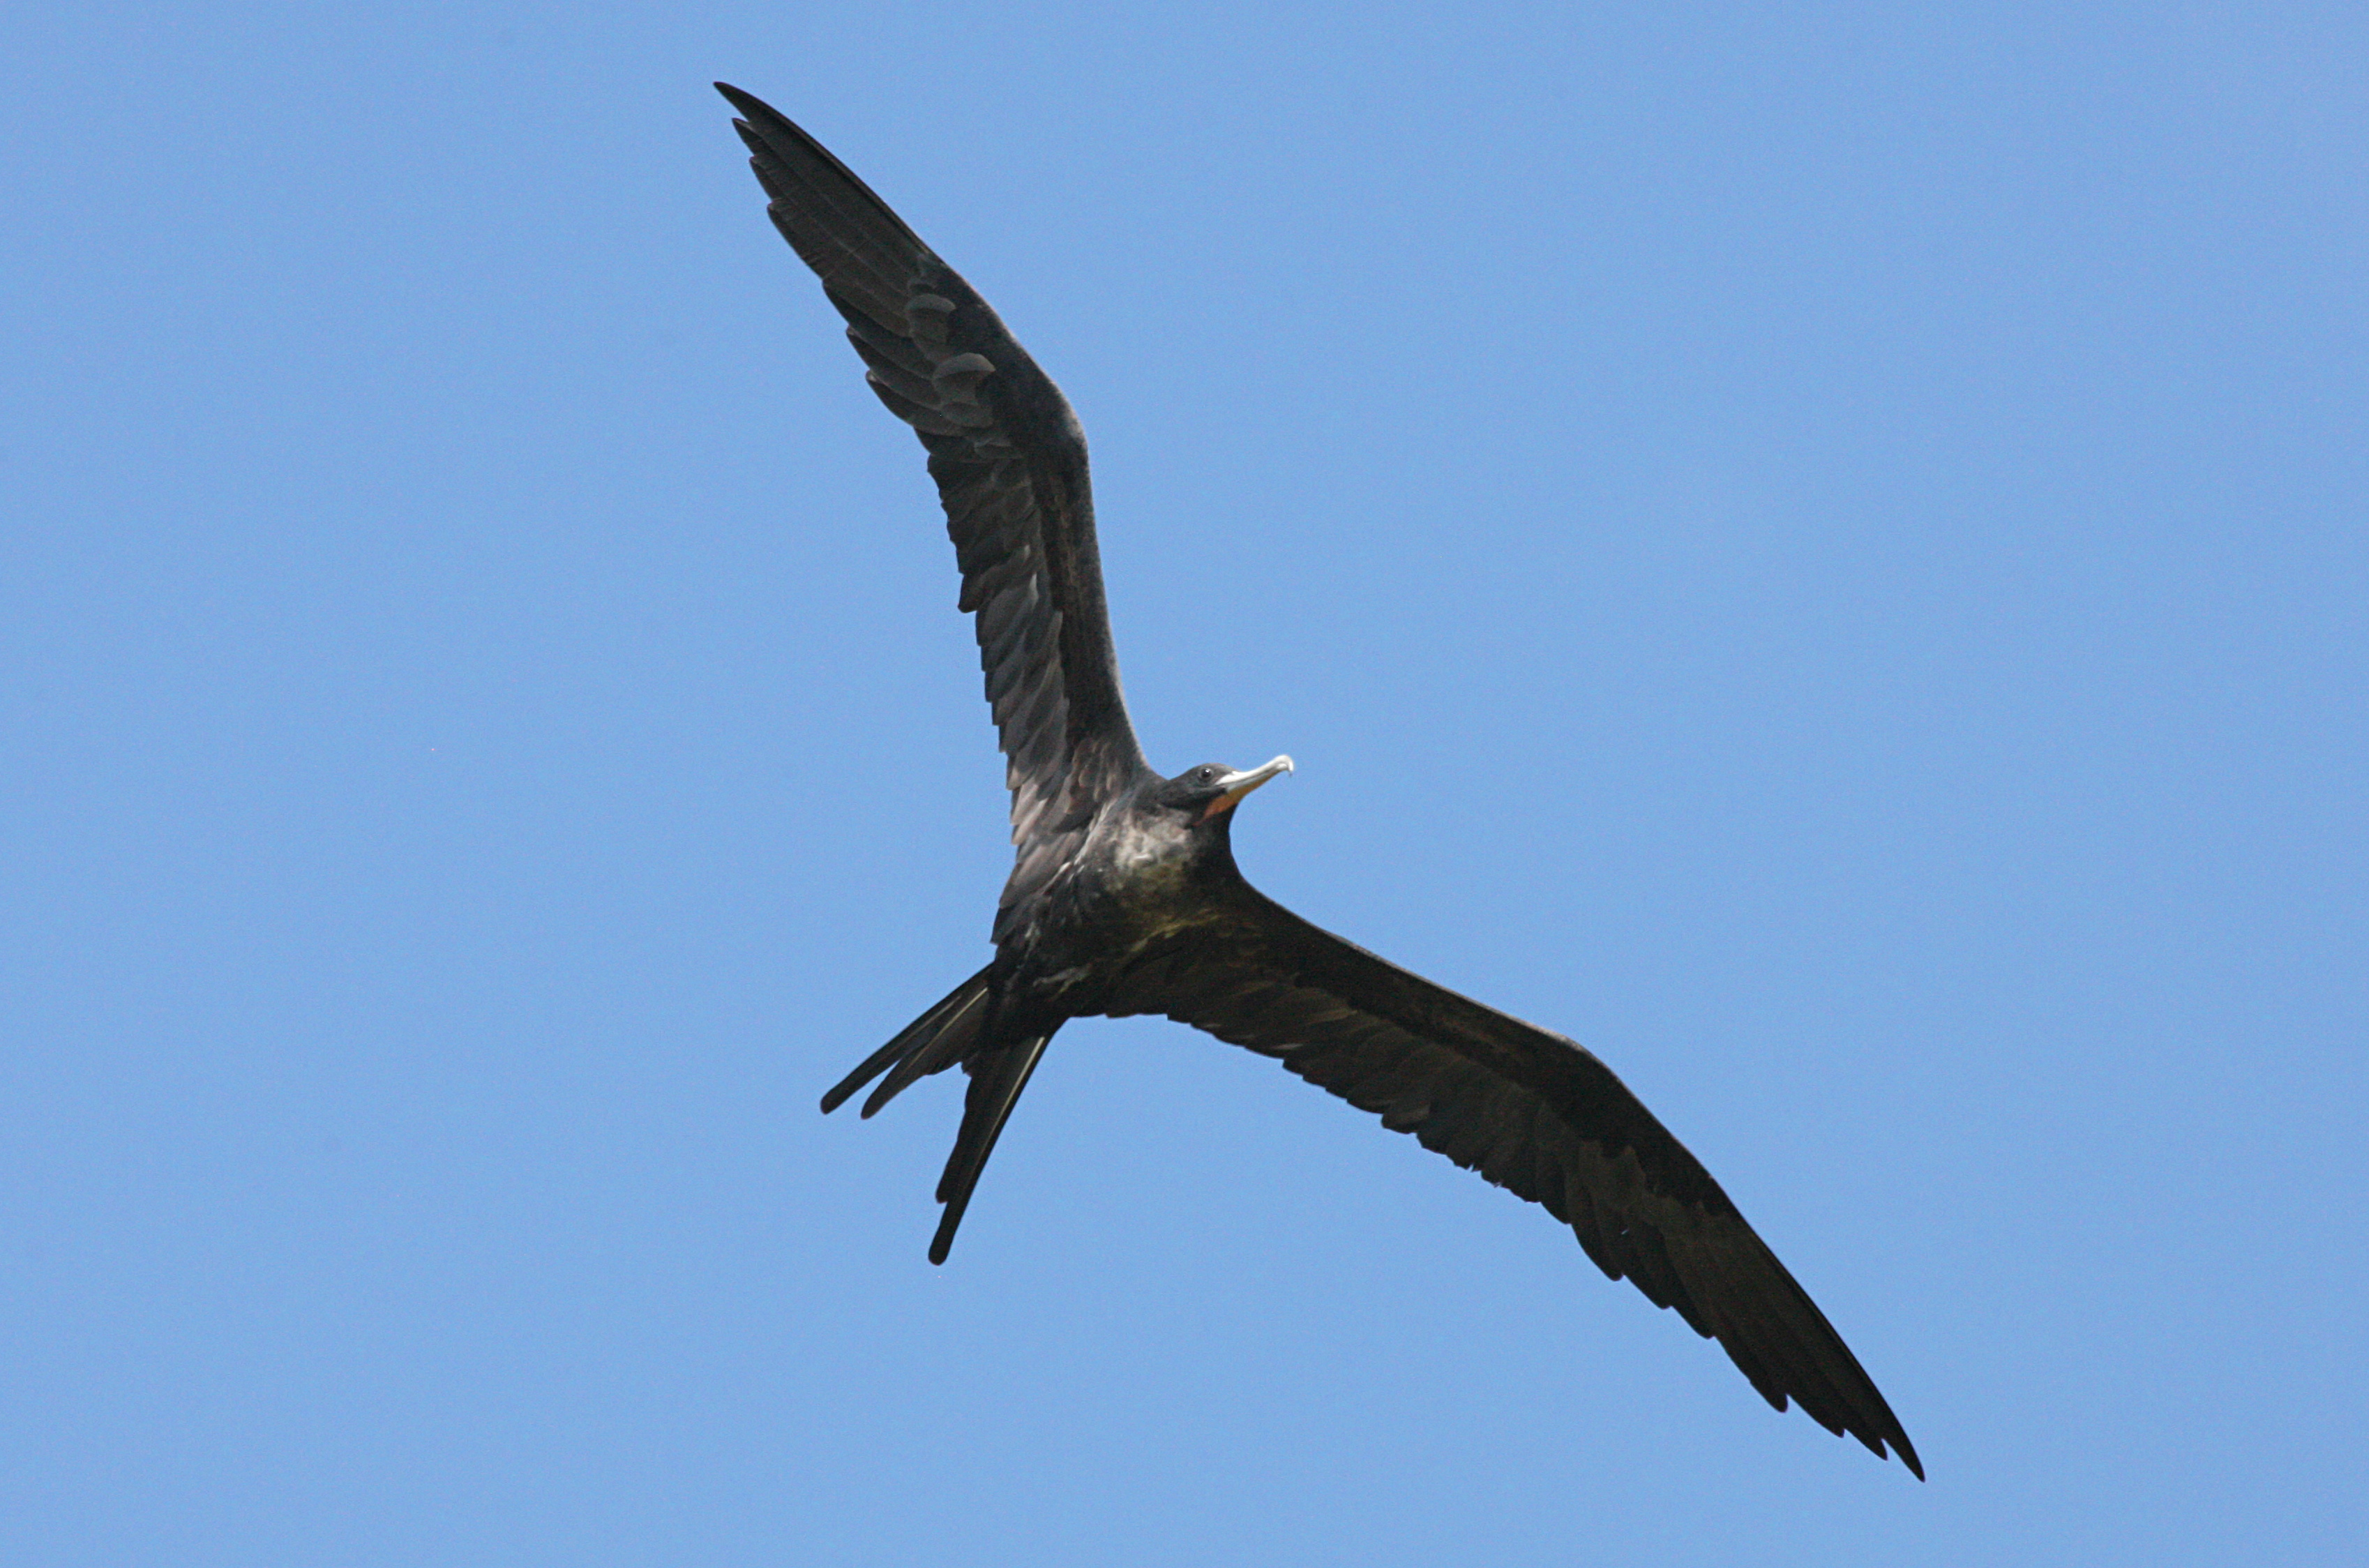 great frigatebird Figure 84 california's two records of the great frigatebird and a specimen from oklahoma provide all records of this elegant seabird for the coterminous united states.